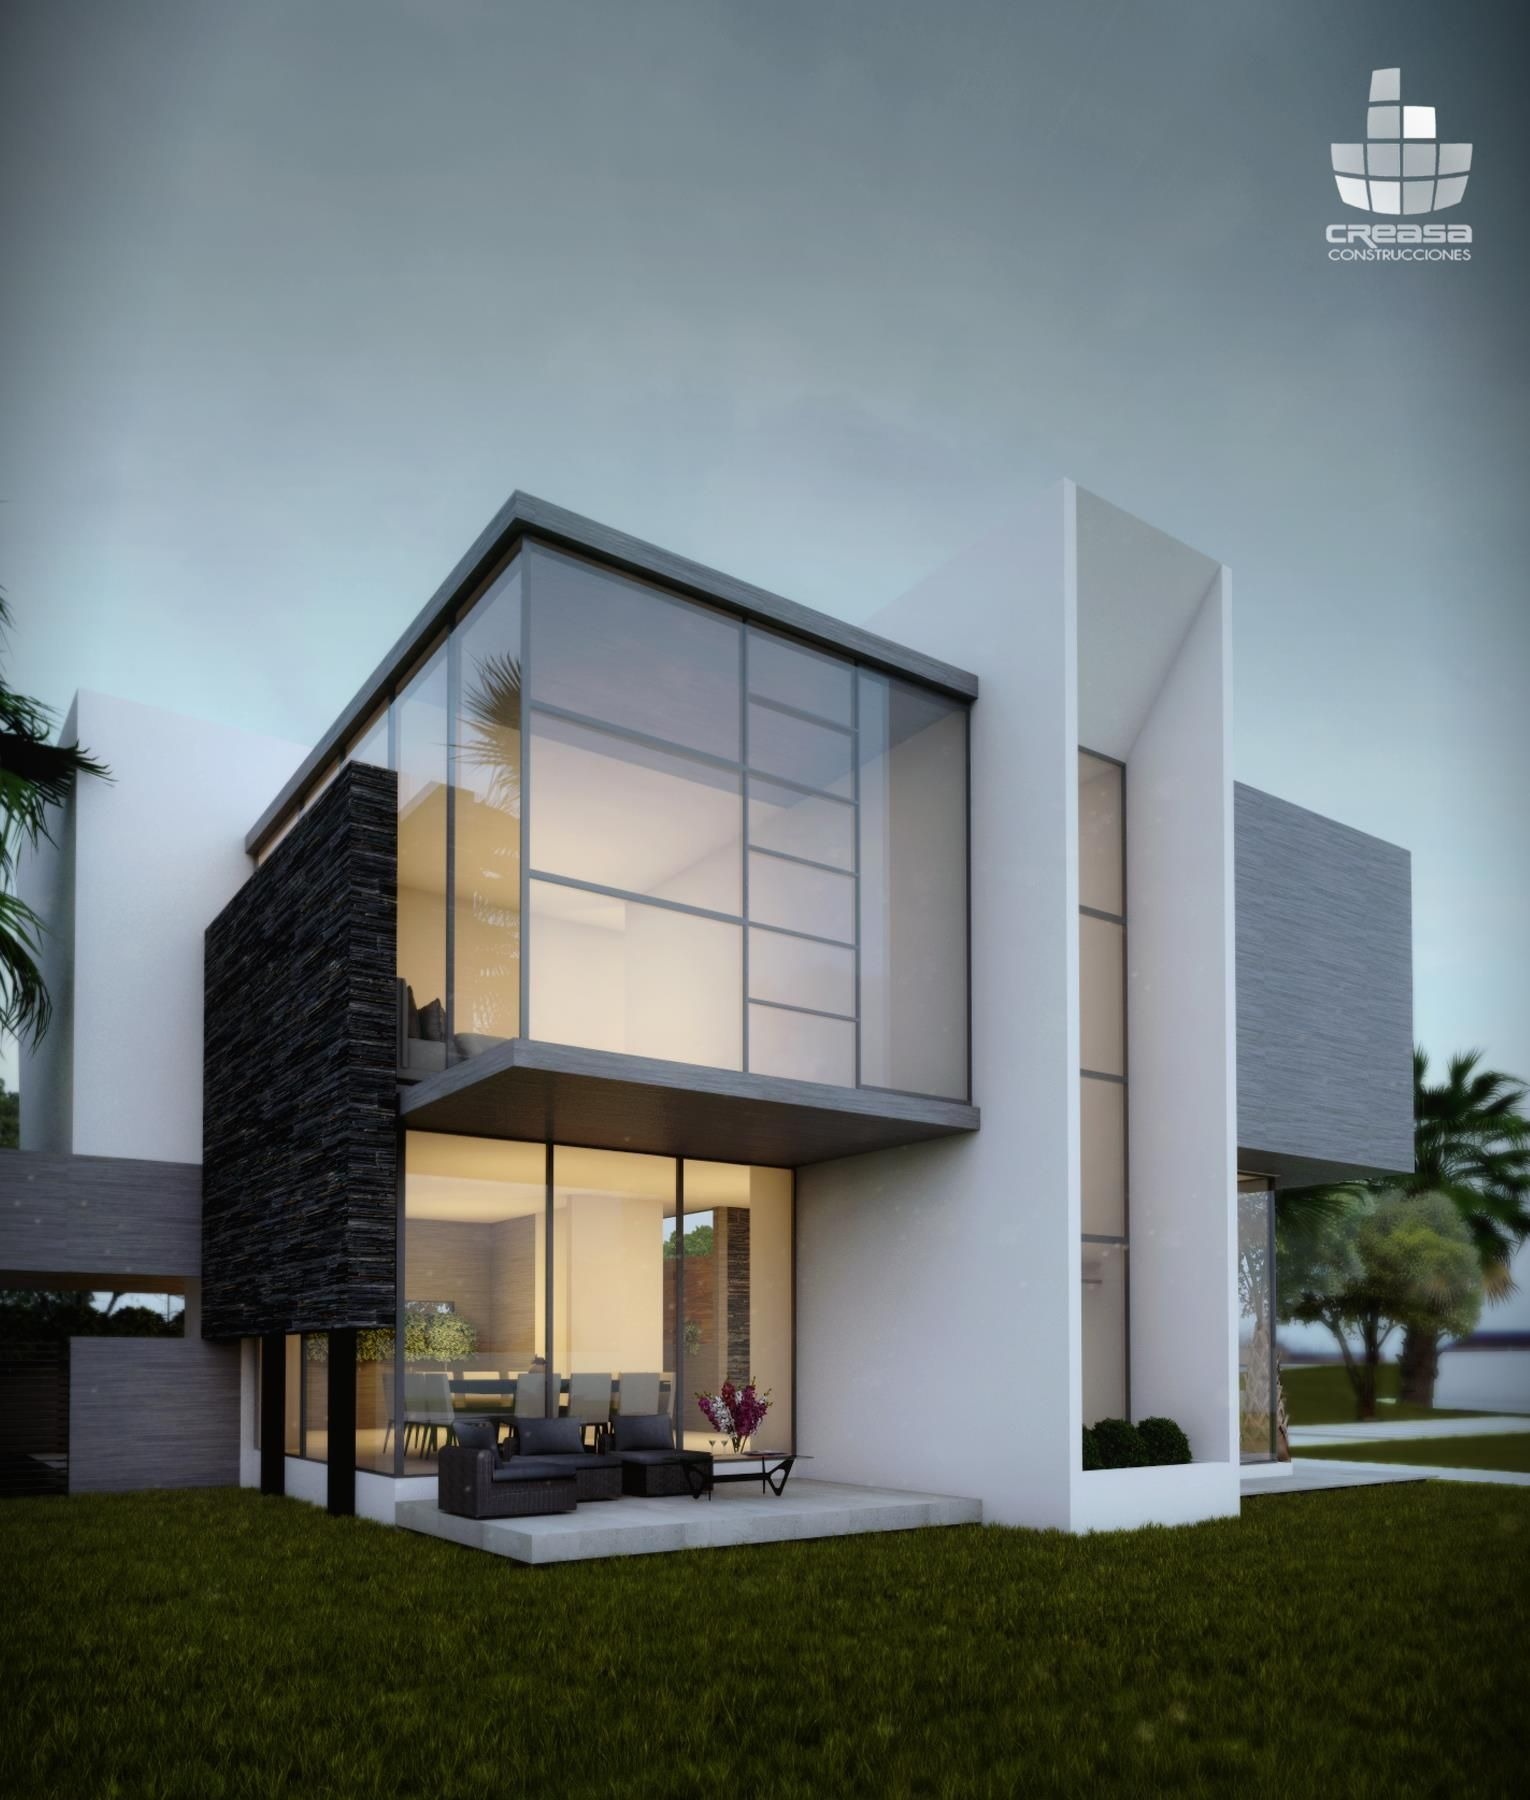 Creasa modern architecture pinterest villas house for Modern home styles designs